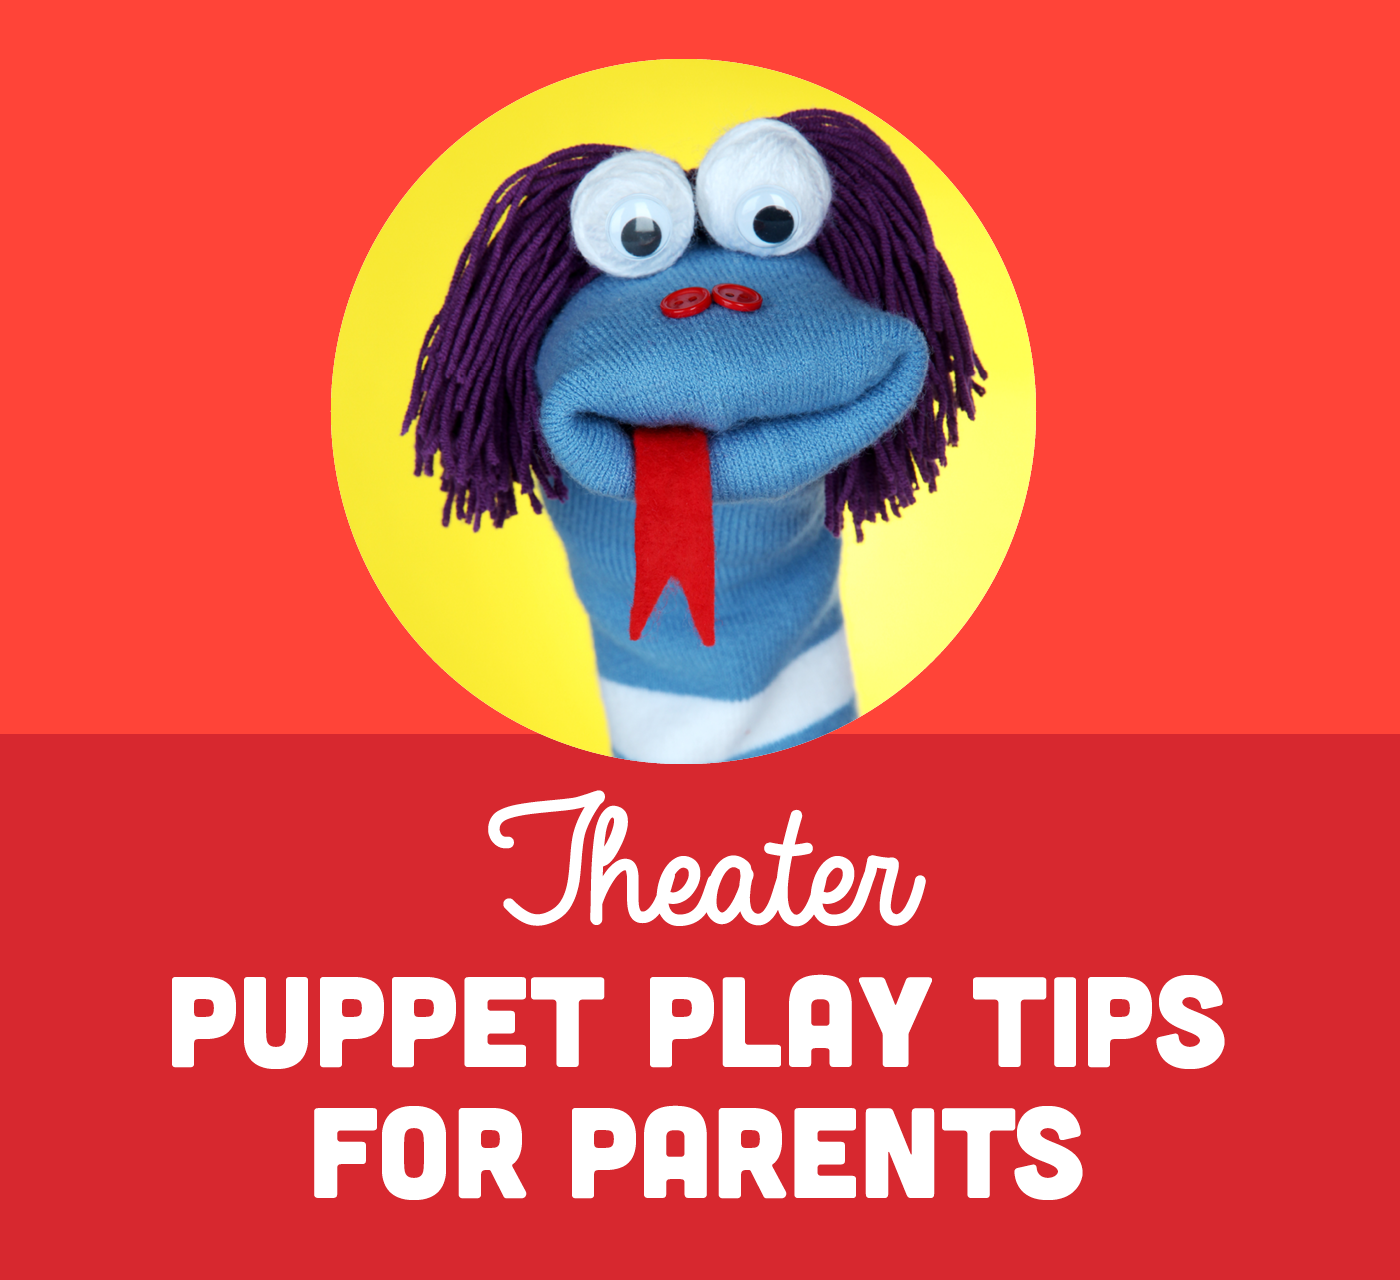 Puppet Play Tips for Parents